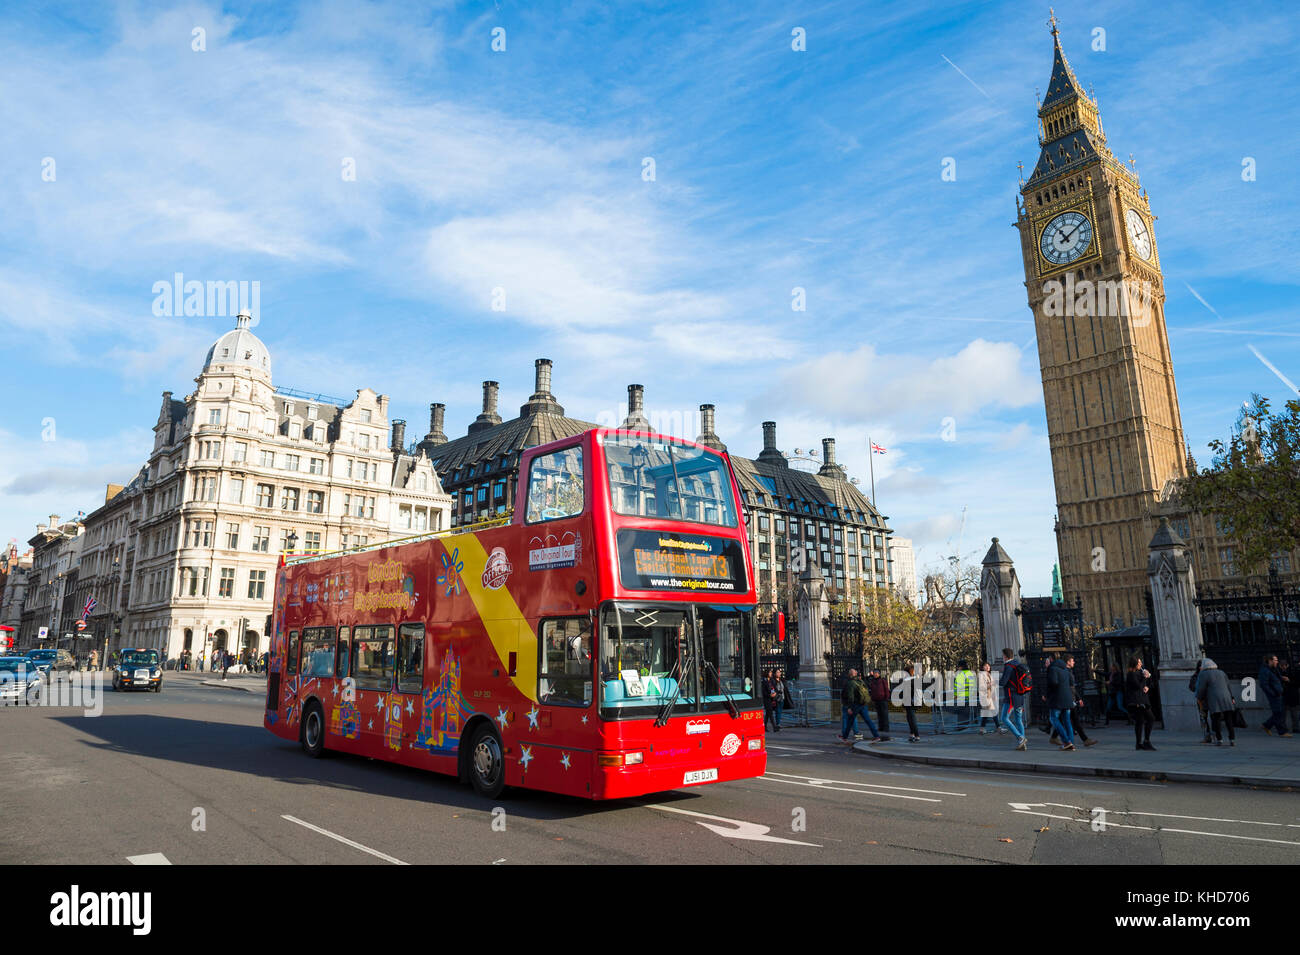 LONDON - NOVEMBER 16, 2016: Double-decker sightseeing tour bus passes Big Ben near the entrance to the Houses of - Stock Image